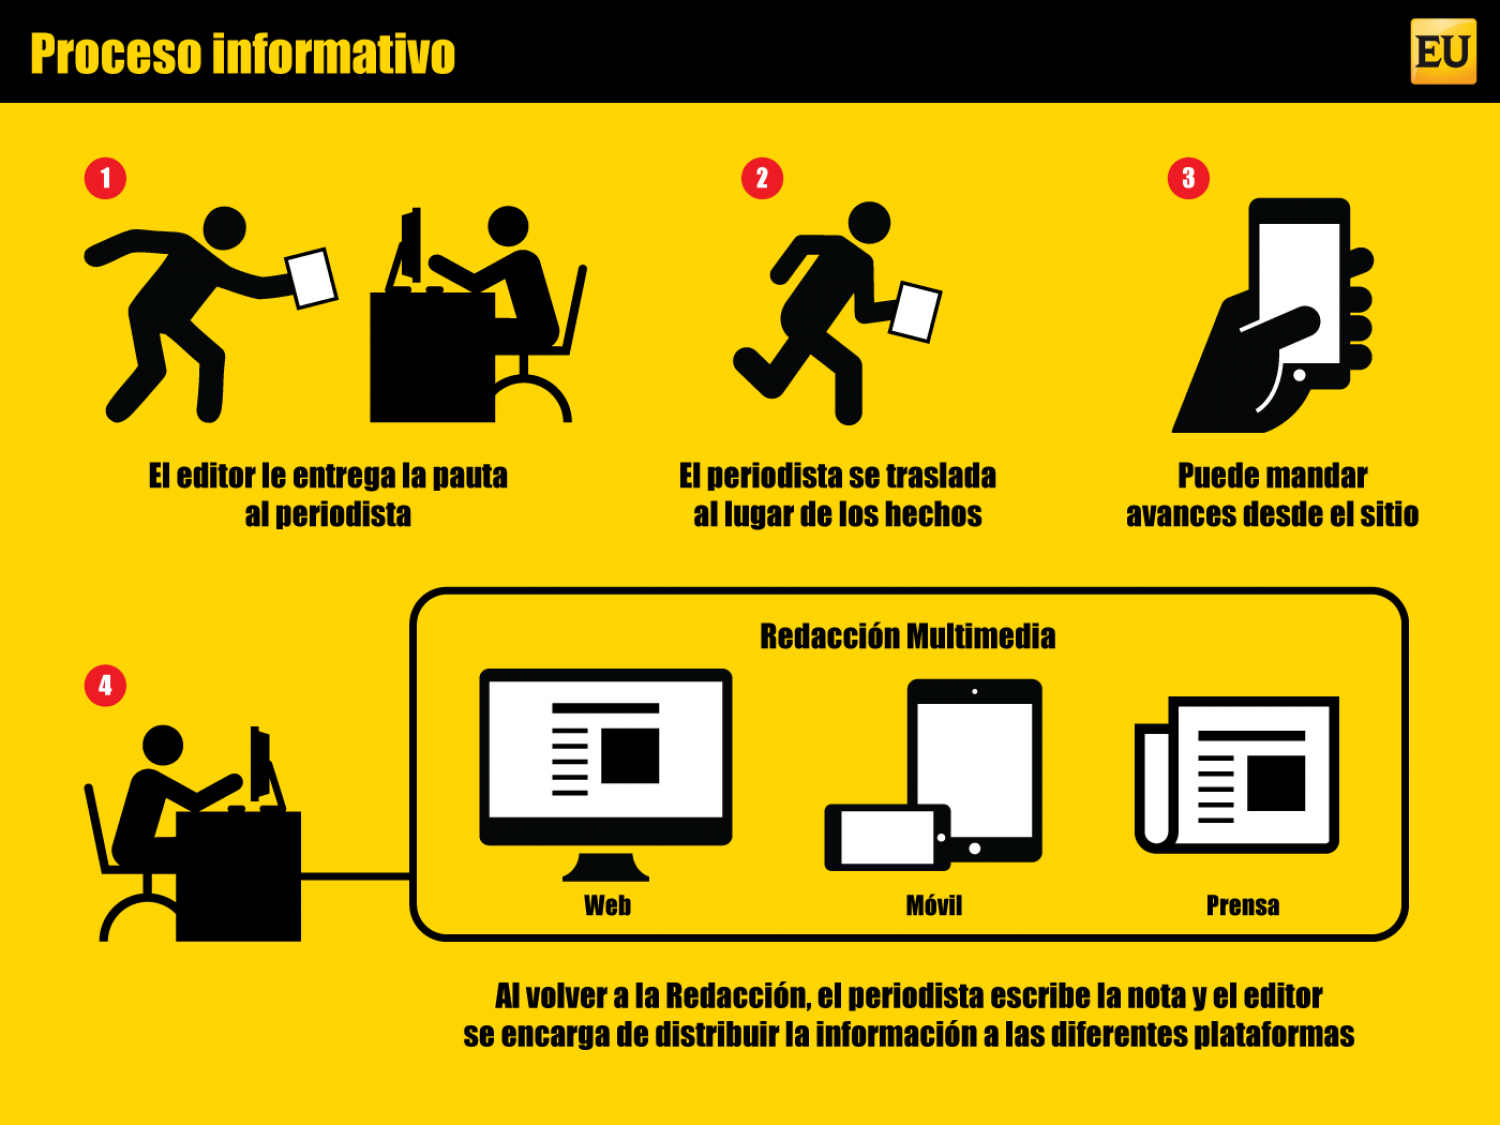 Proceso informativo Infographic